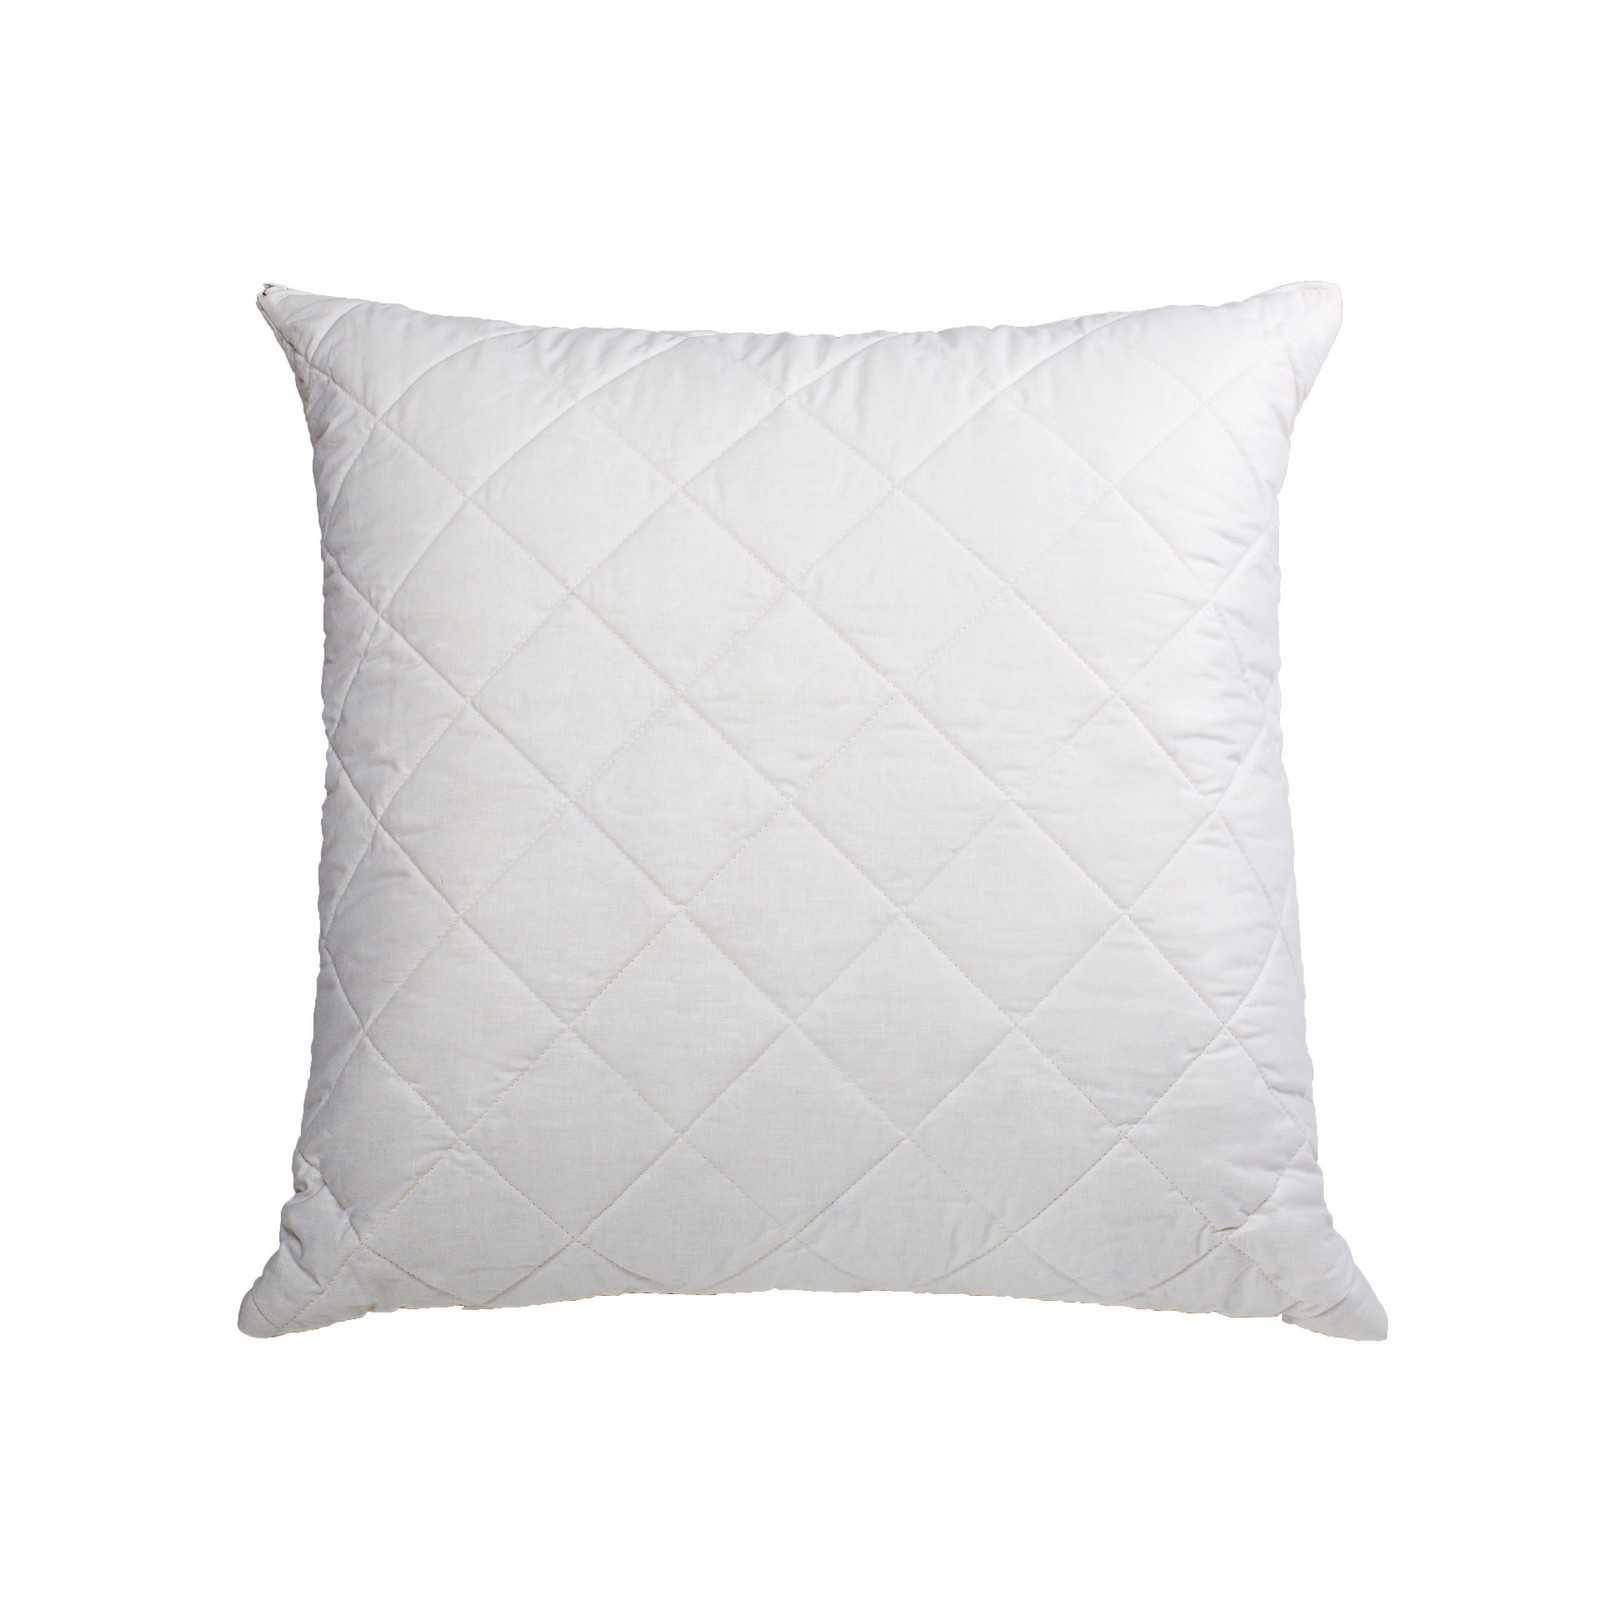 Confidence Anti Dust Mite Pillow